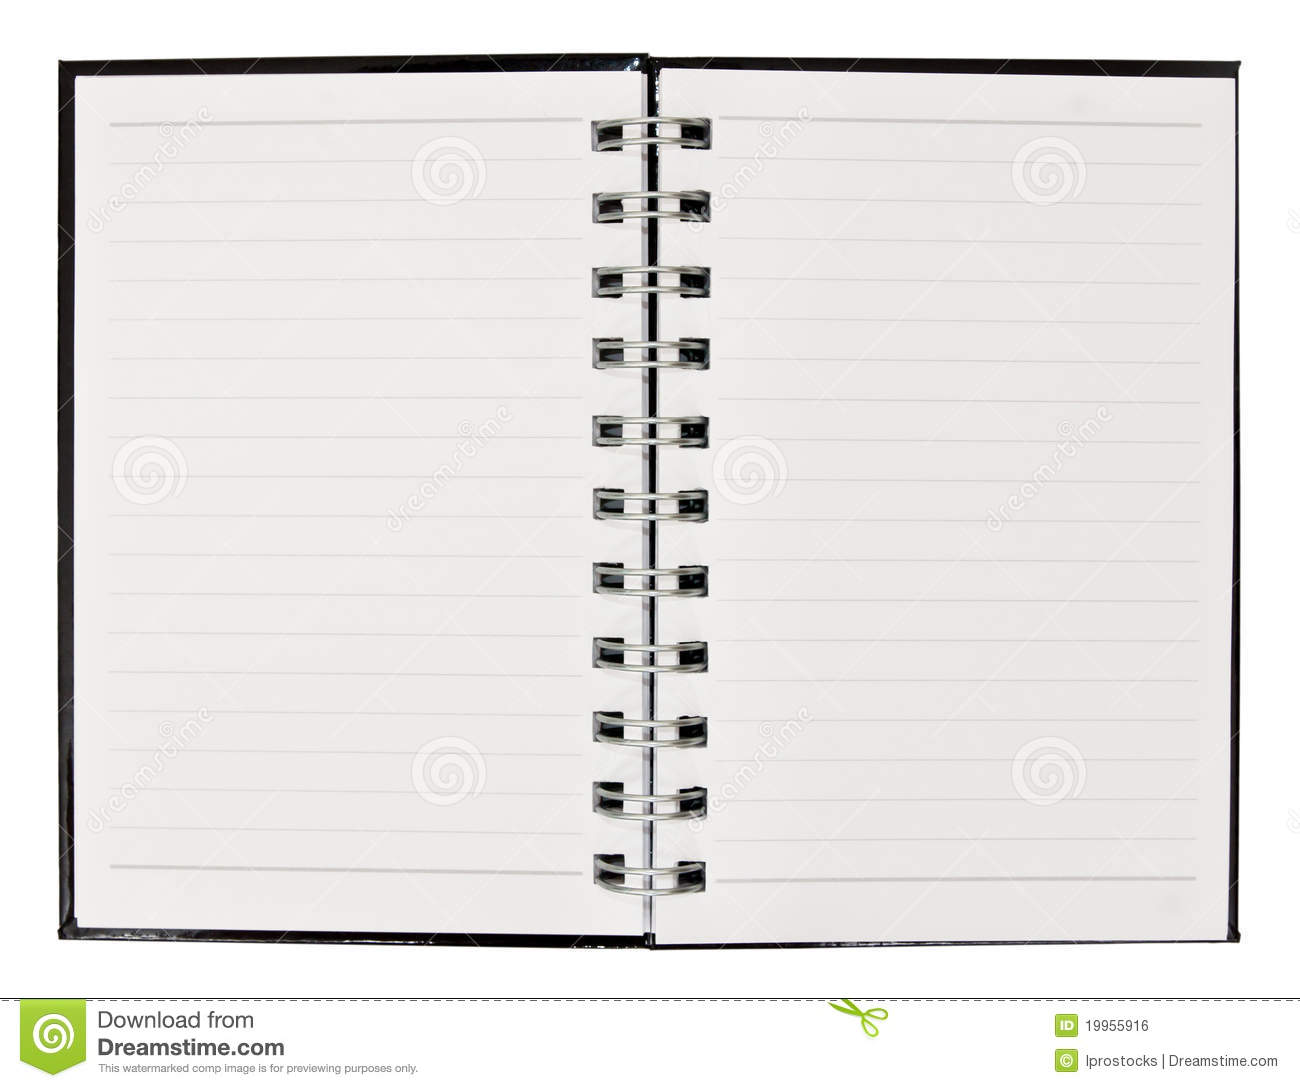 Blank Note Book With Ring Binder Royalty Free Stock Image